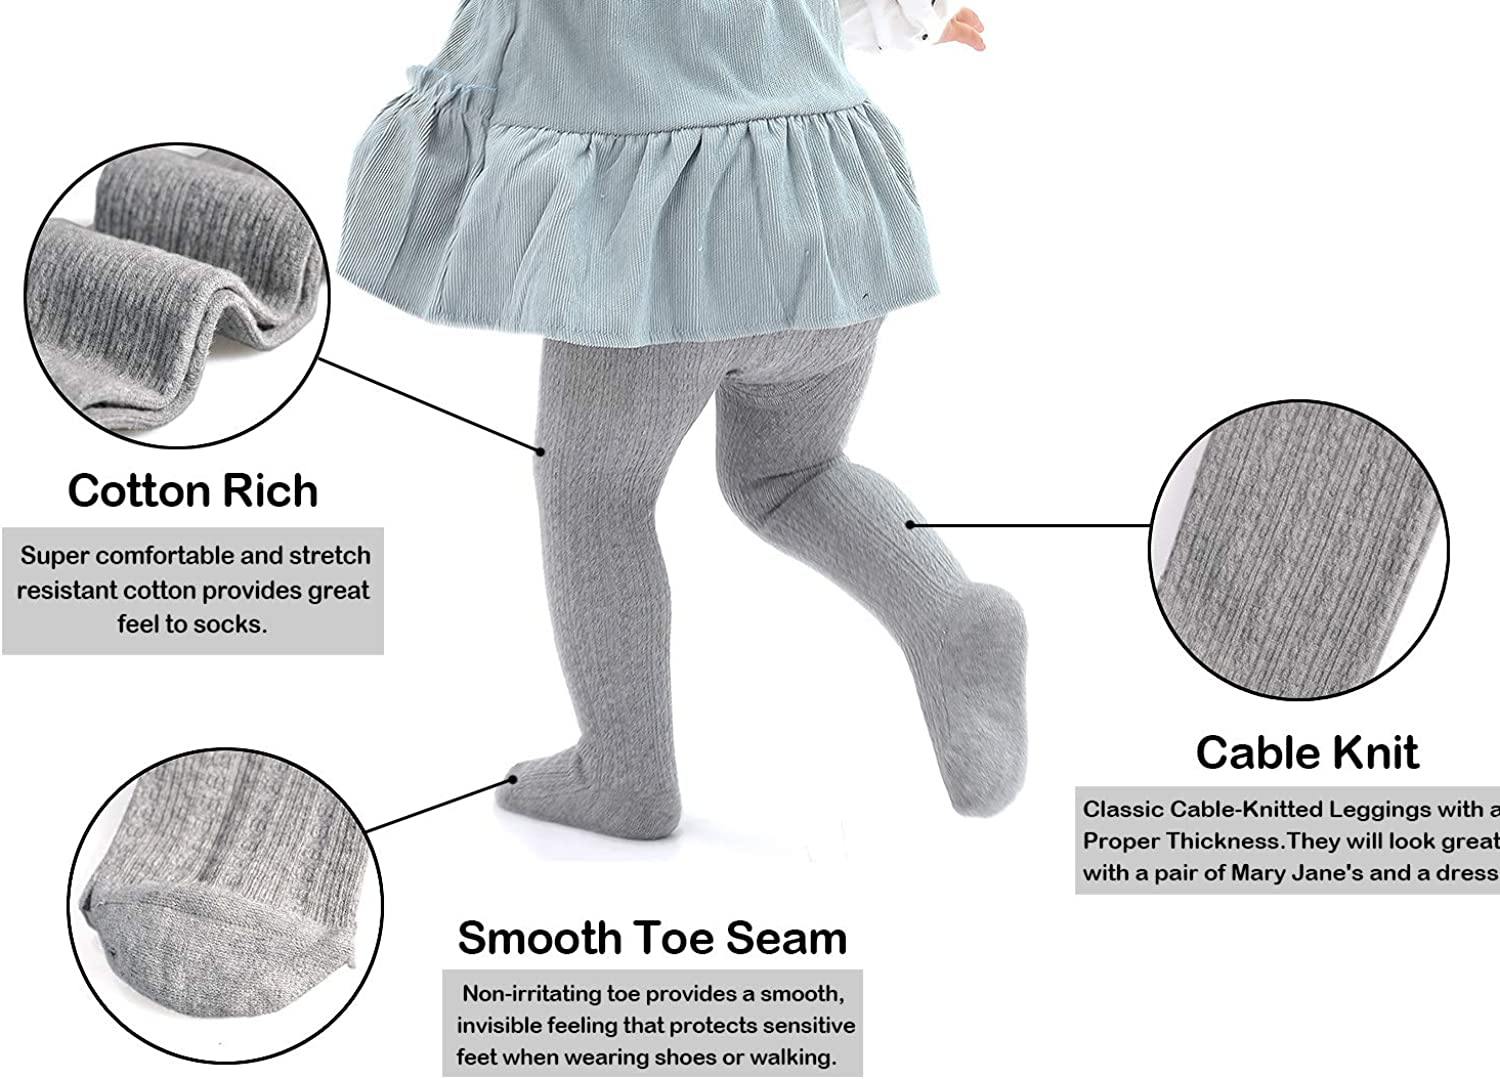 Epeius Baby Girls Tights Cable Knit Leggings Stockings Cotton Pantyhose for Newborn Infants Toddlers 3/6 Pack: Clothing